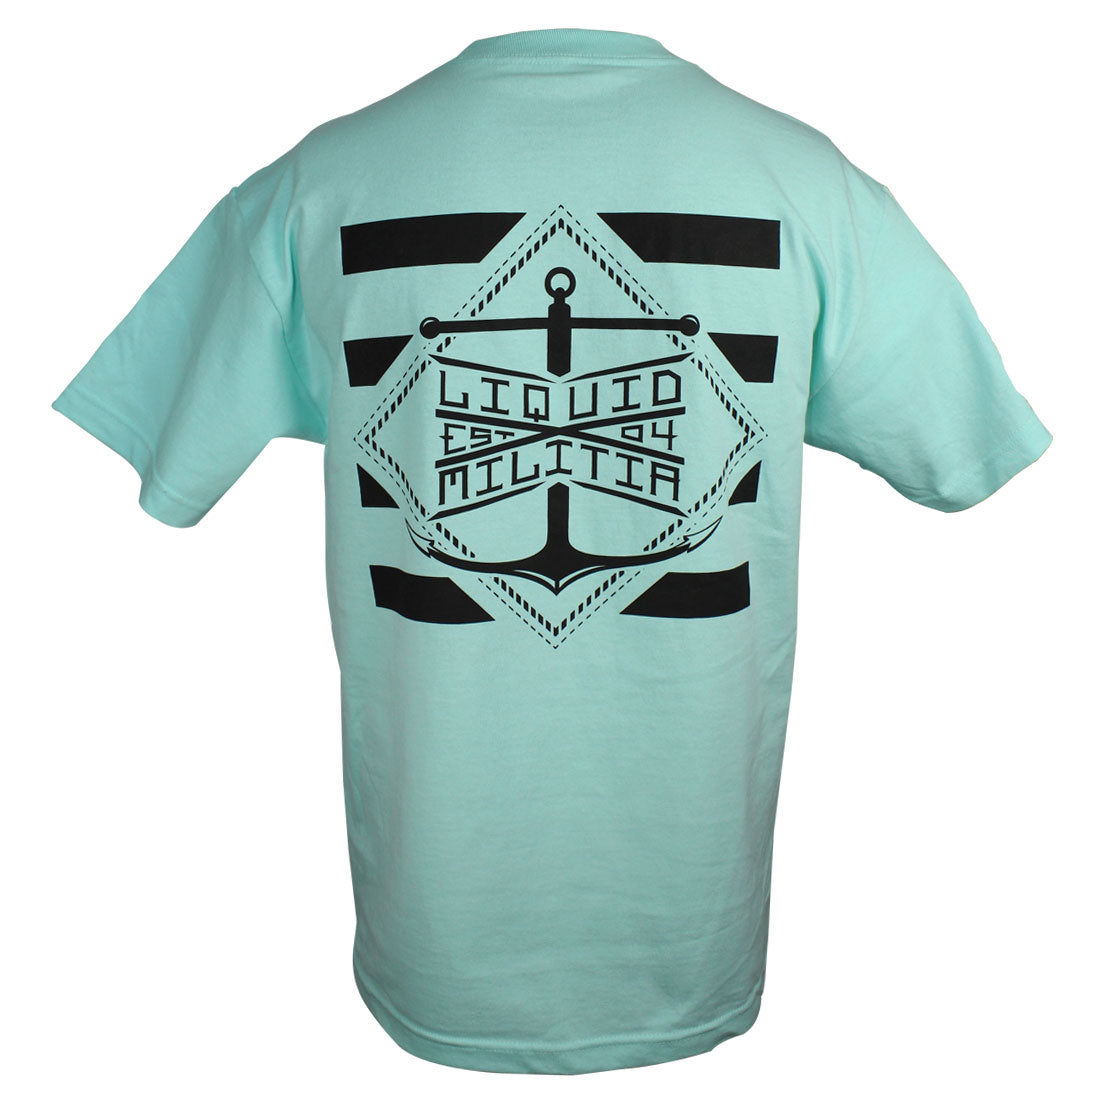 Pylon Mens Standard Tee in Celadon - Back